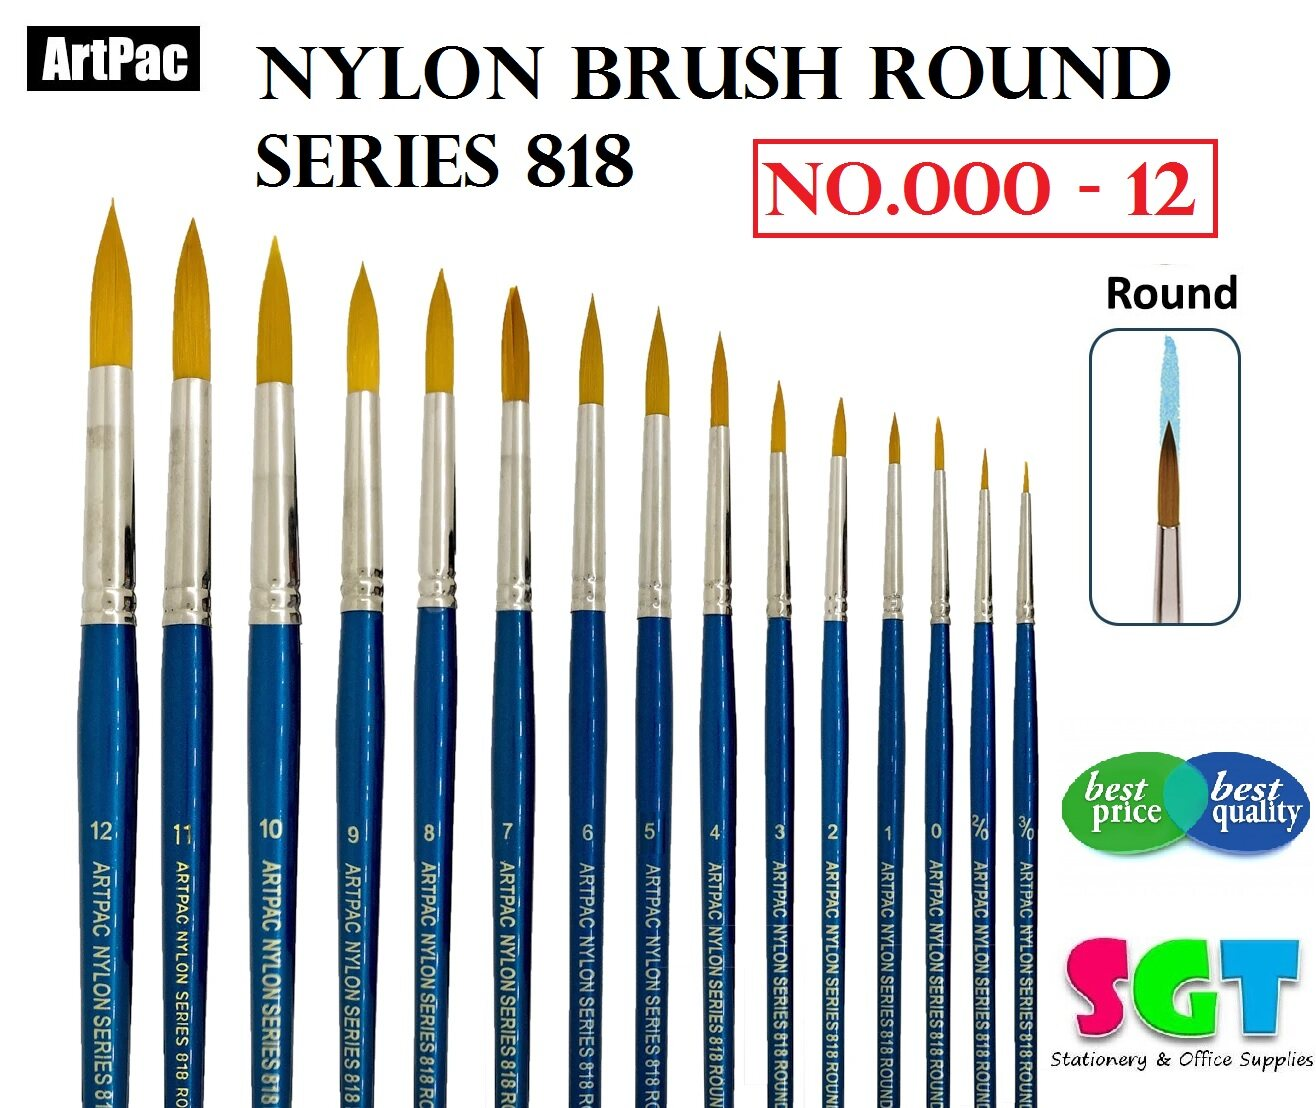 ARTPAC NYLON BRUSH ROUND SERIES 818 (NO:000-12)